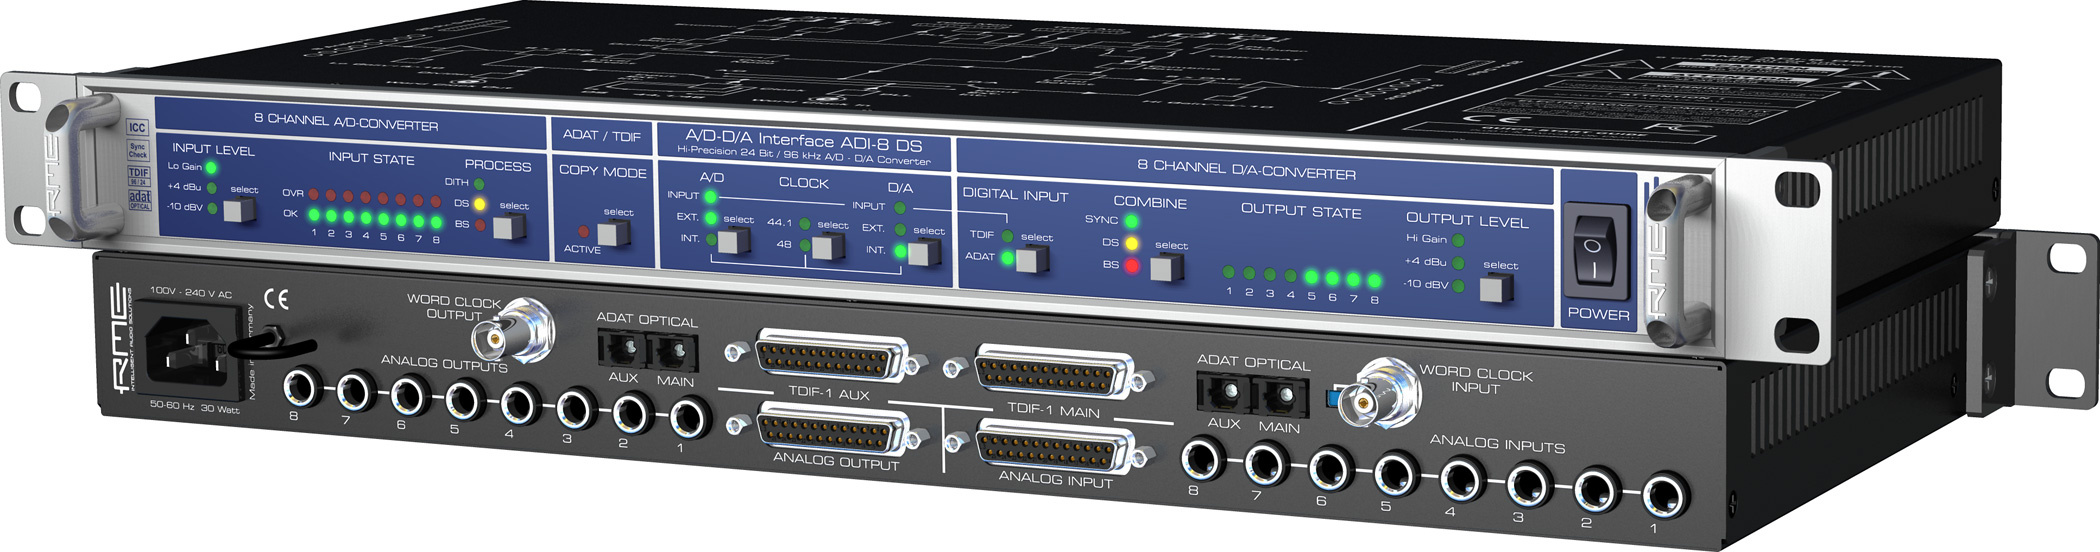 RME ADI 8 DS Broadcast